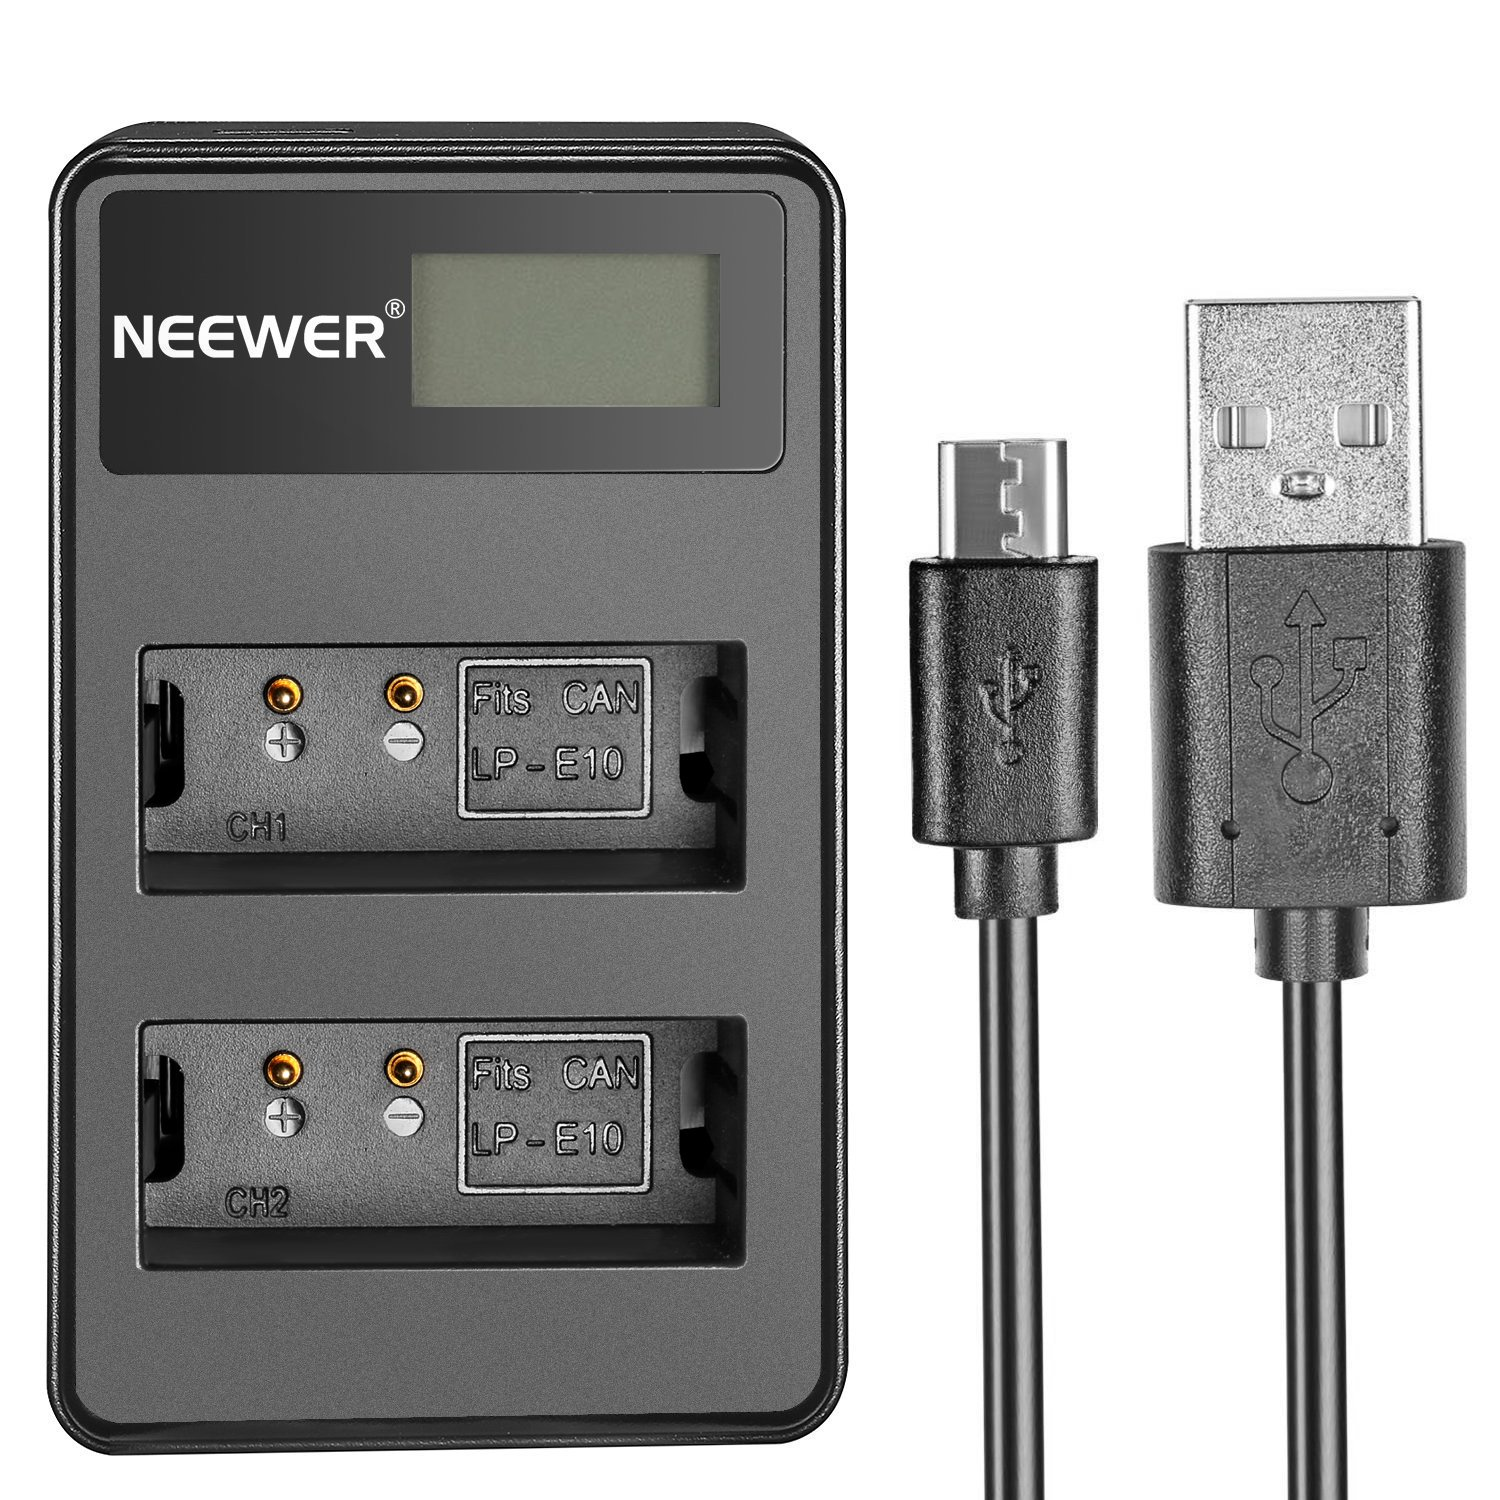 Neewer USB Dual Battery Charger with LED Display 5V/2A Input for Canon LP-E10 Rechargeable Battery, Suitable for Canon EOS Rebel T3 T5 T6 Kiss X50 Kiss X70 EOS 1100D EOS 1200D EOS 1300D Digital Camera